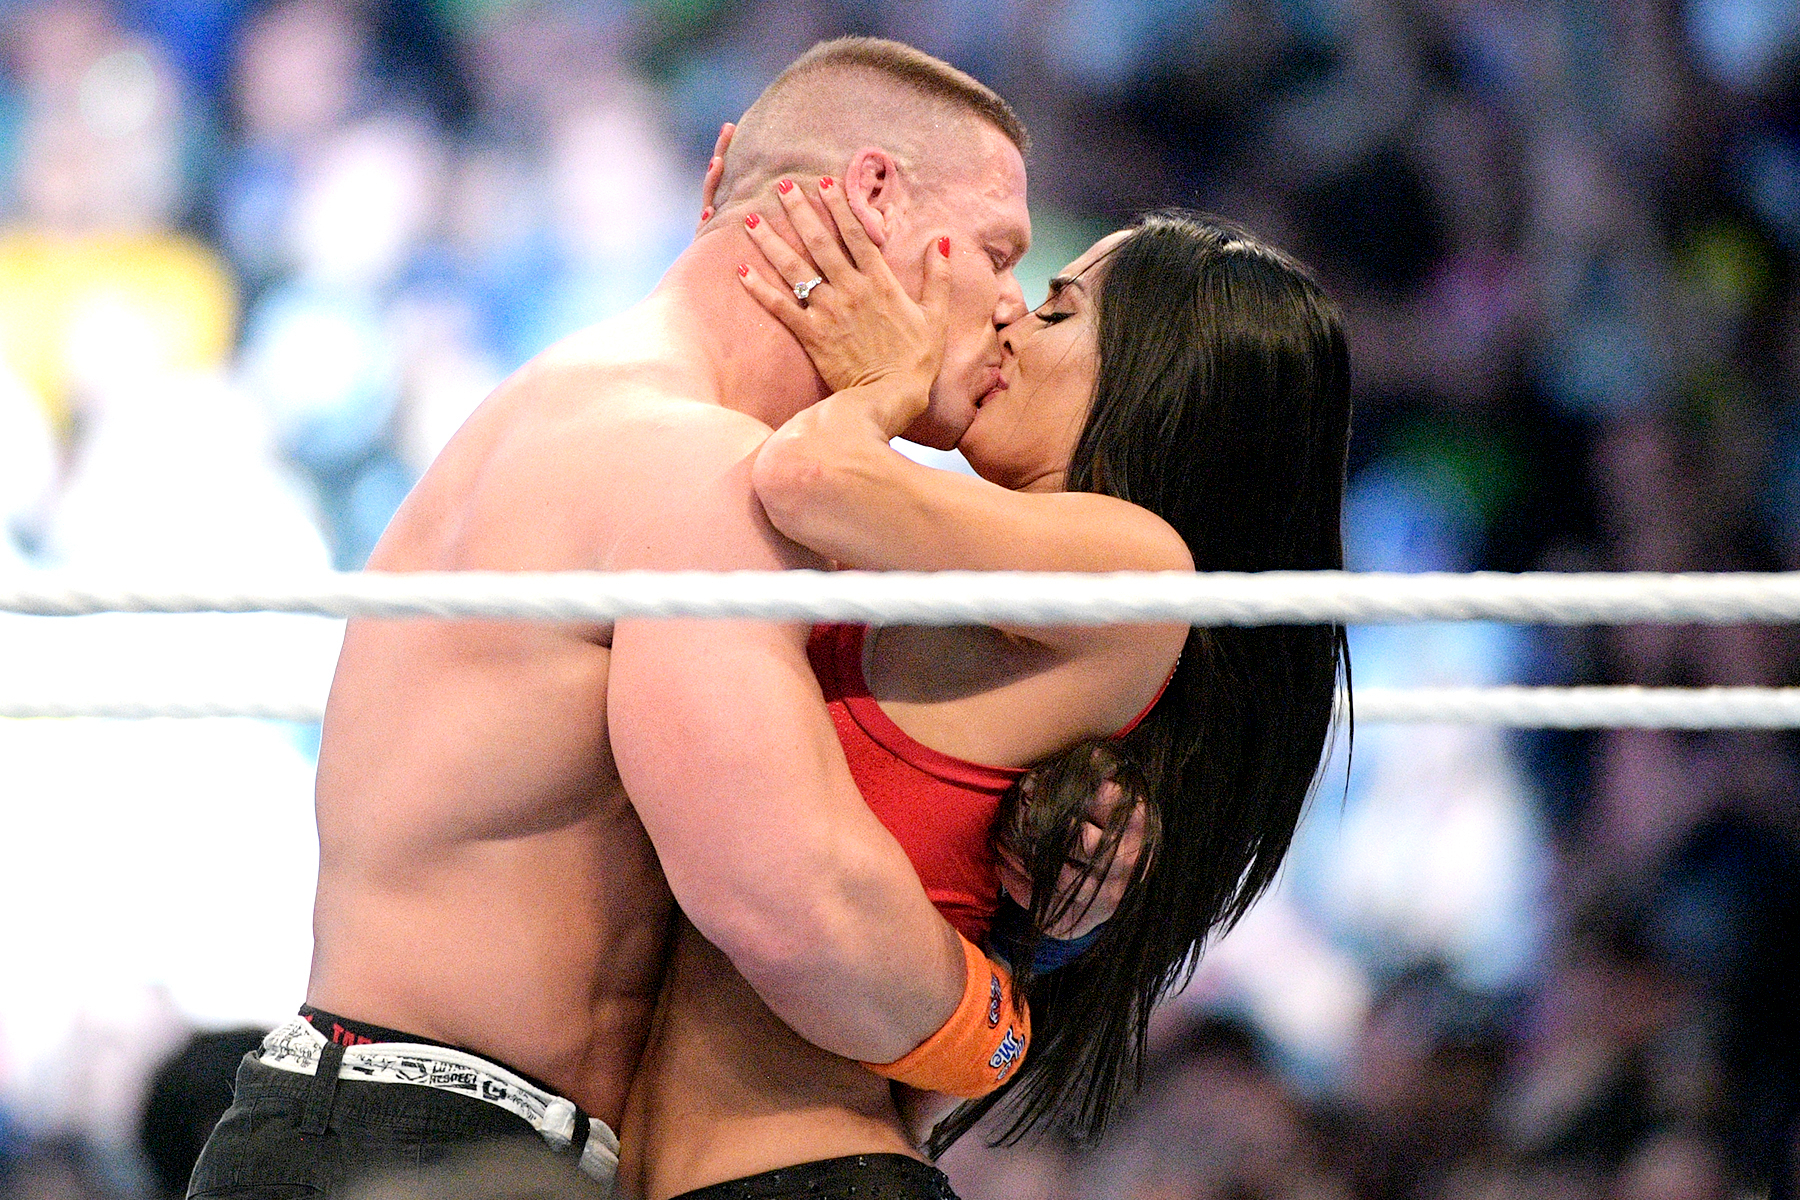 WWE Superstars John Cena, left, and Nikki Bella kiss after she accepted his marriage proposal during WrestleMania 33 on Sunday, April 2, 2017, in Orlando, Fla.